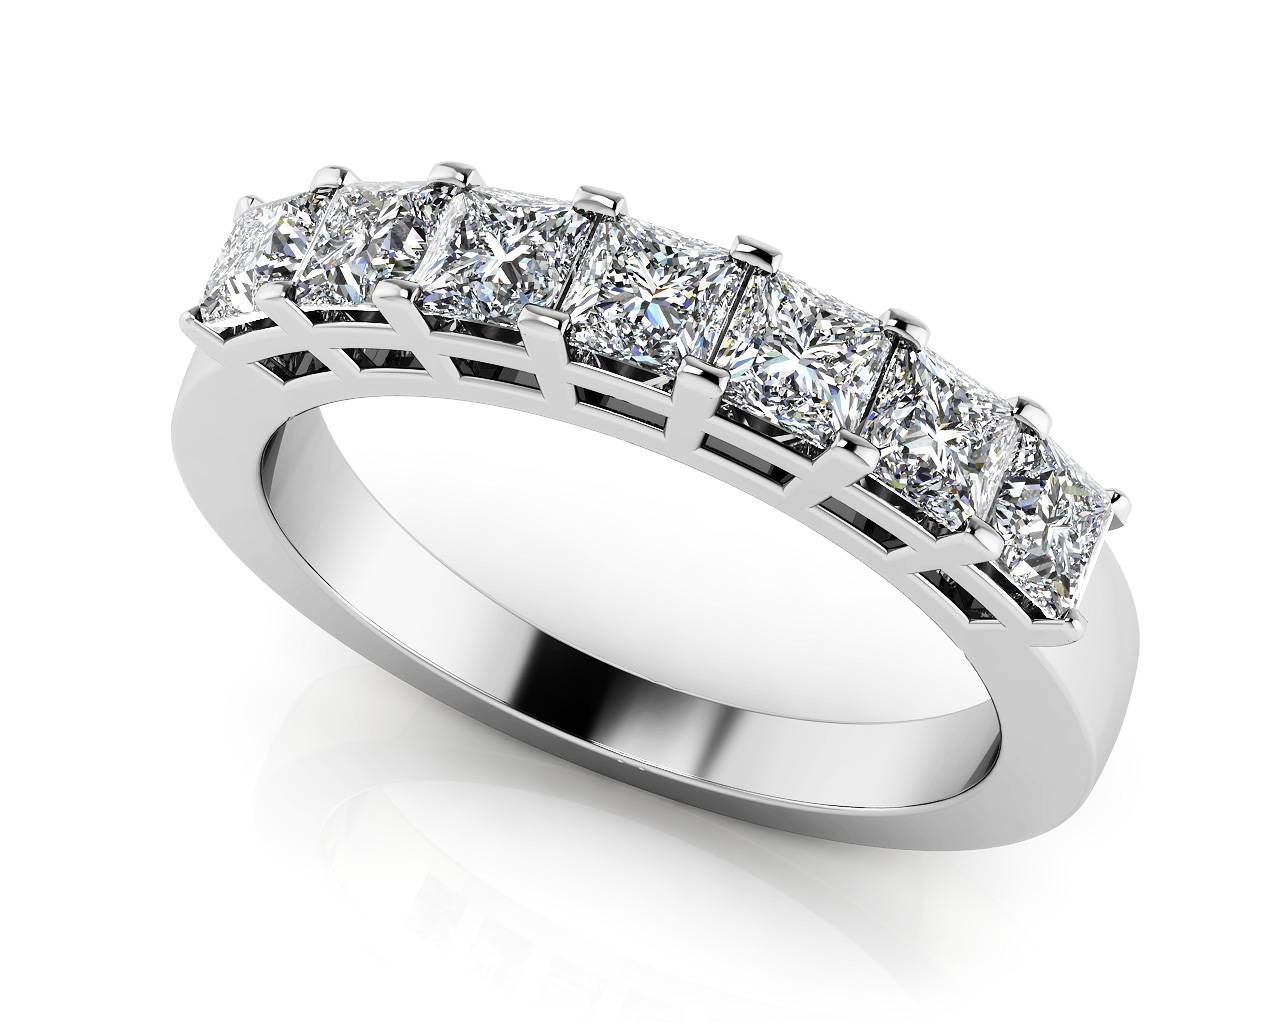 Design Your Own Diamond Anniversary Ring & Eternity Ring With 2018 Wedding And Anniversary Rings (View 13 of 25)